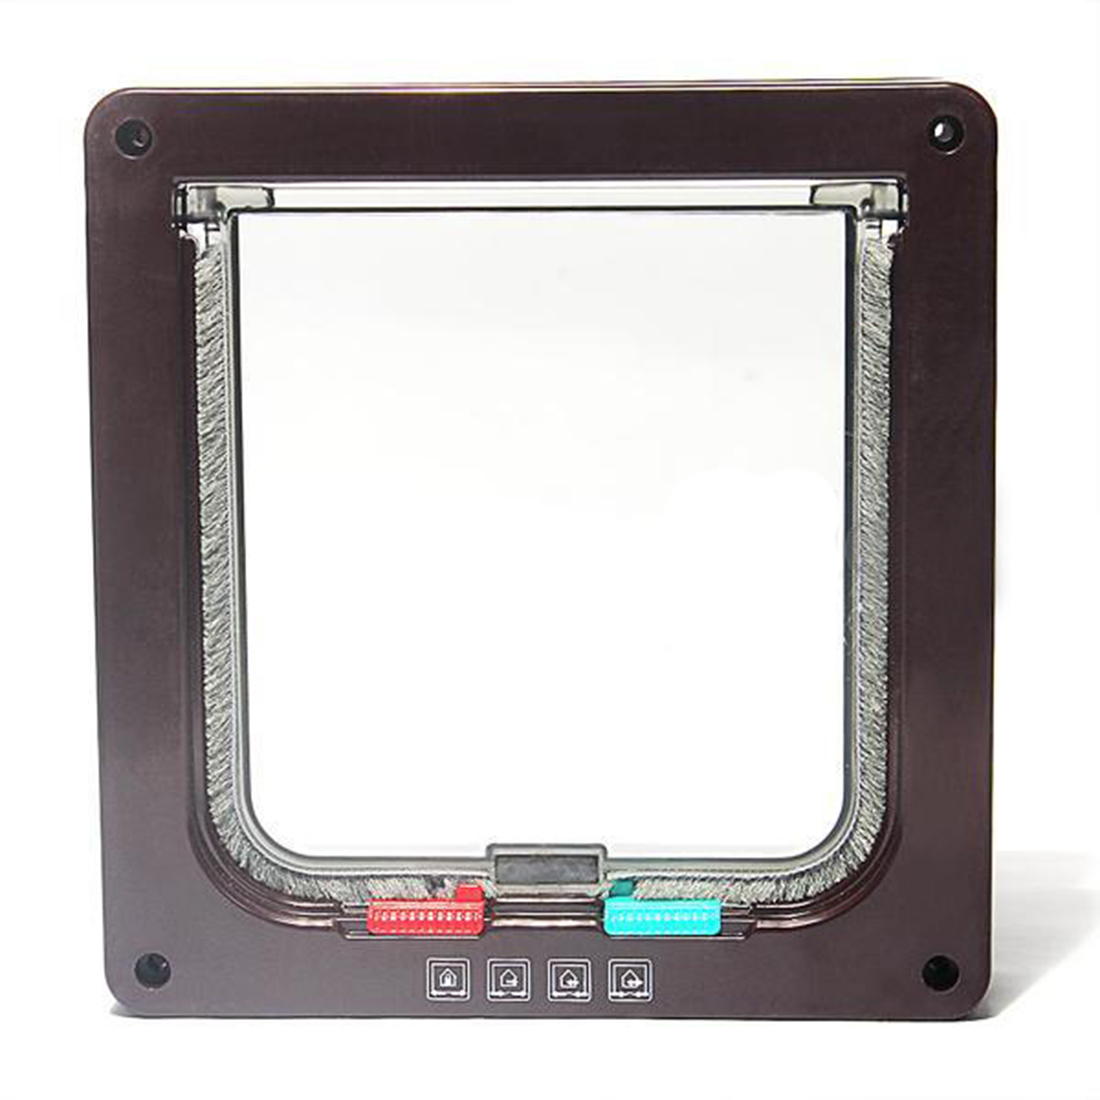 Unique Waterproof 4 Way Cat Dog Pet Locking Flap Door Cat Flap High Quality in Cat Crates Cages from Home Garden